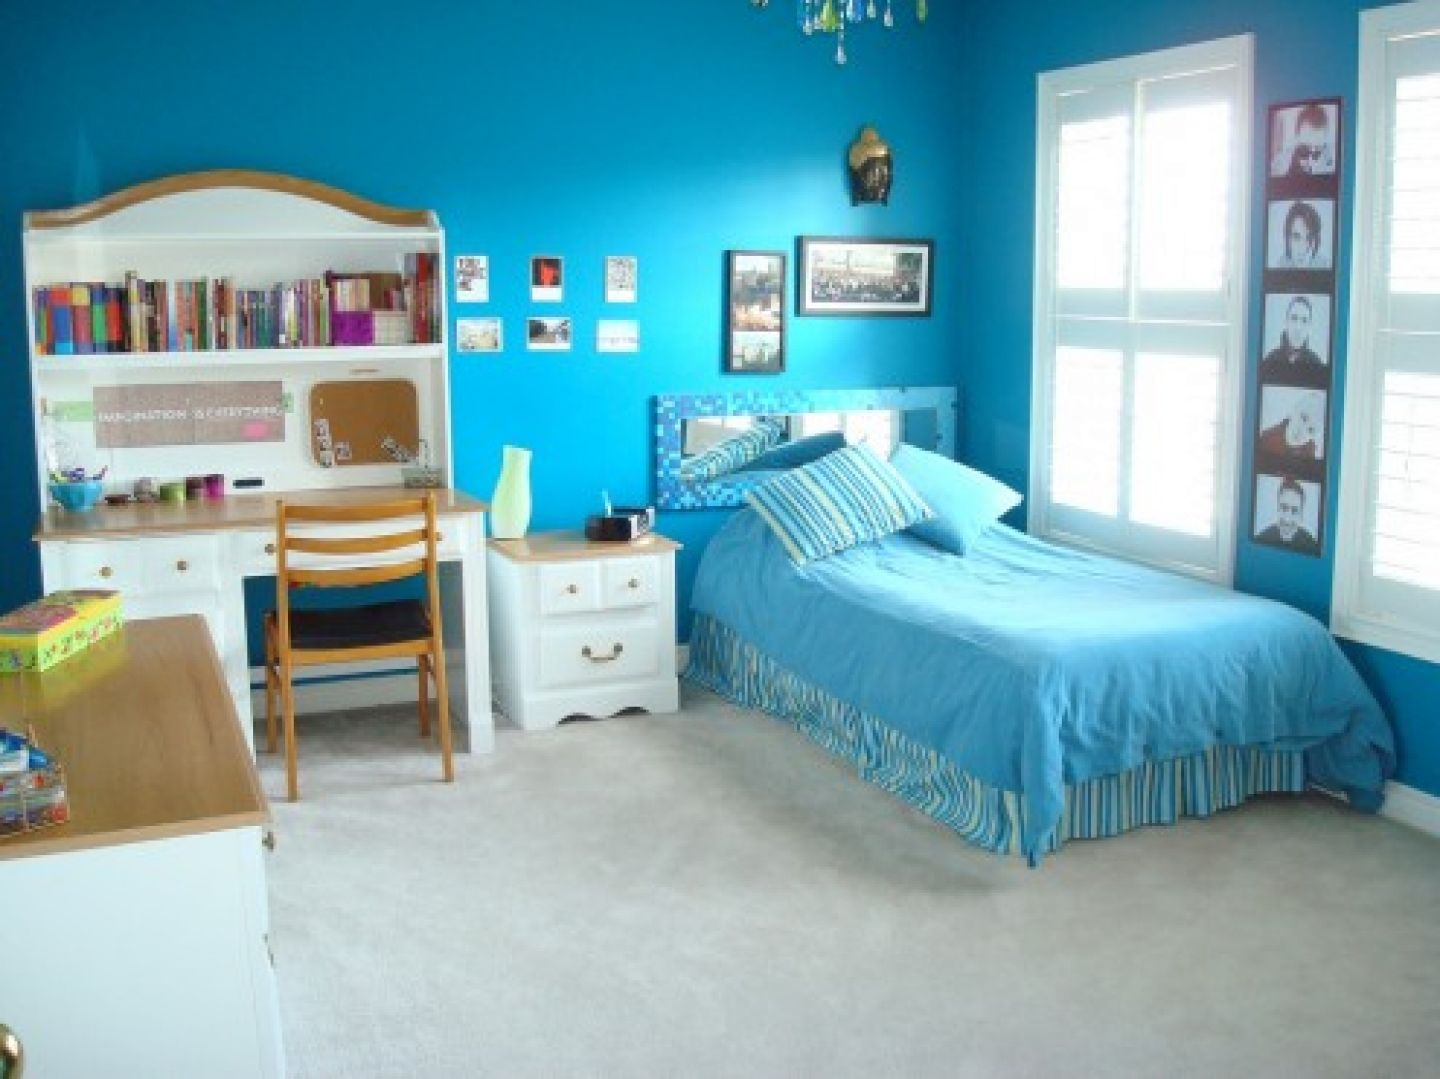 Bedroom Decor Ideas For Teenage Girls awesome teen girl bedroom decorating ideas with blue bedding